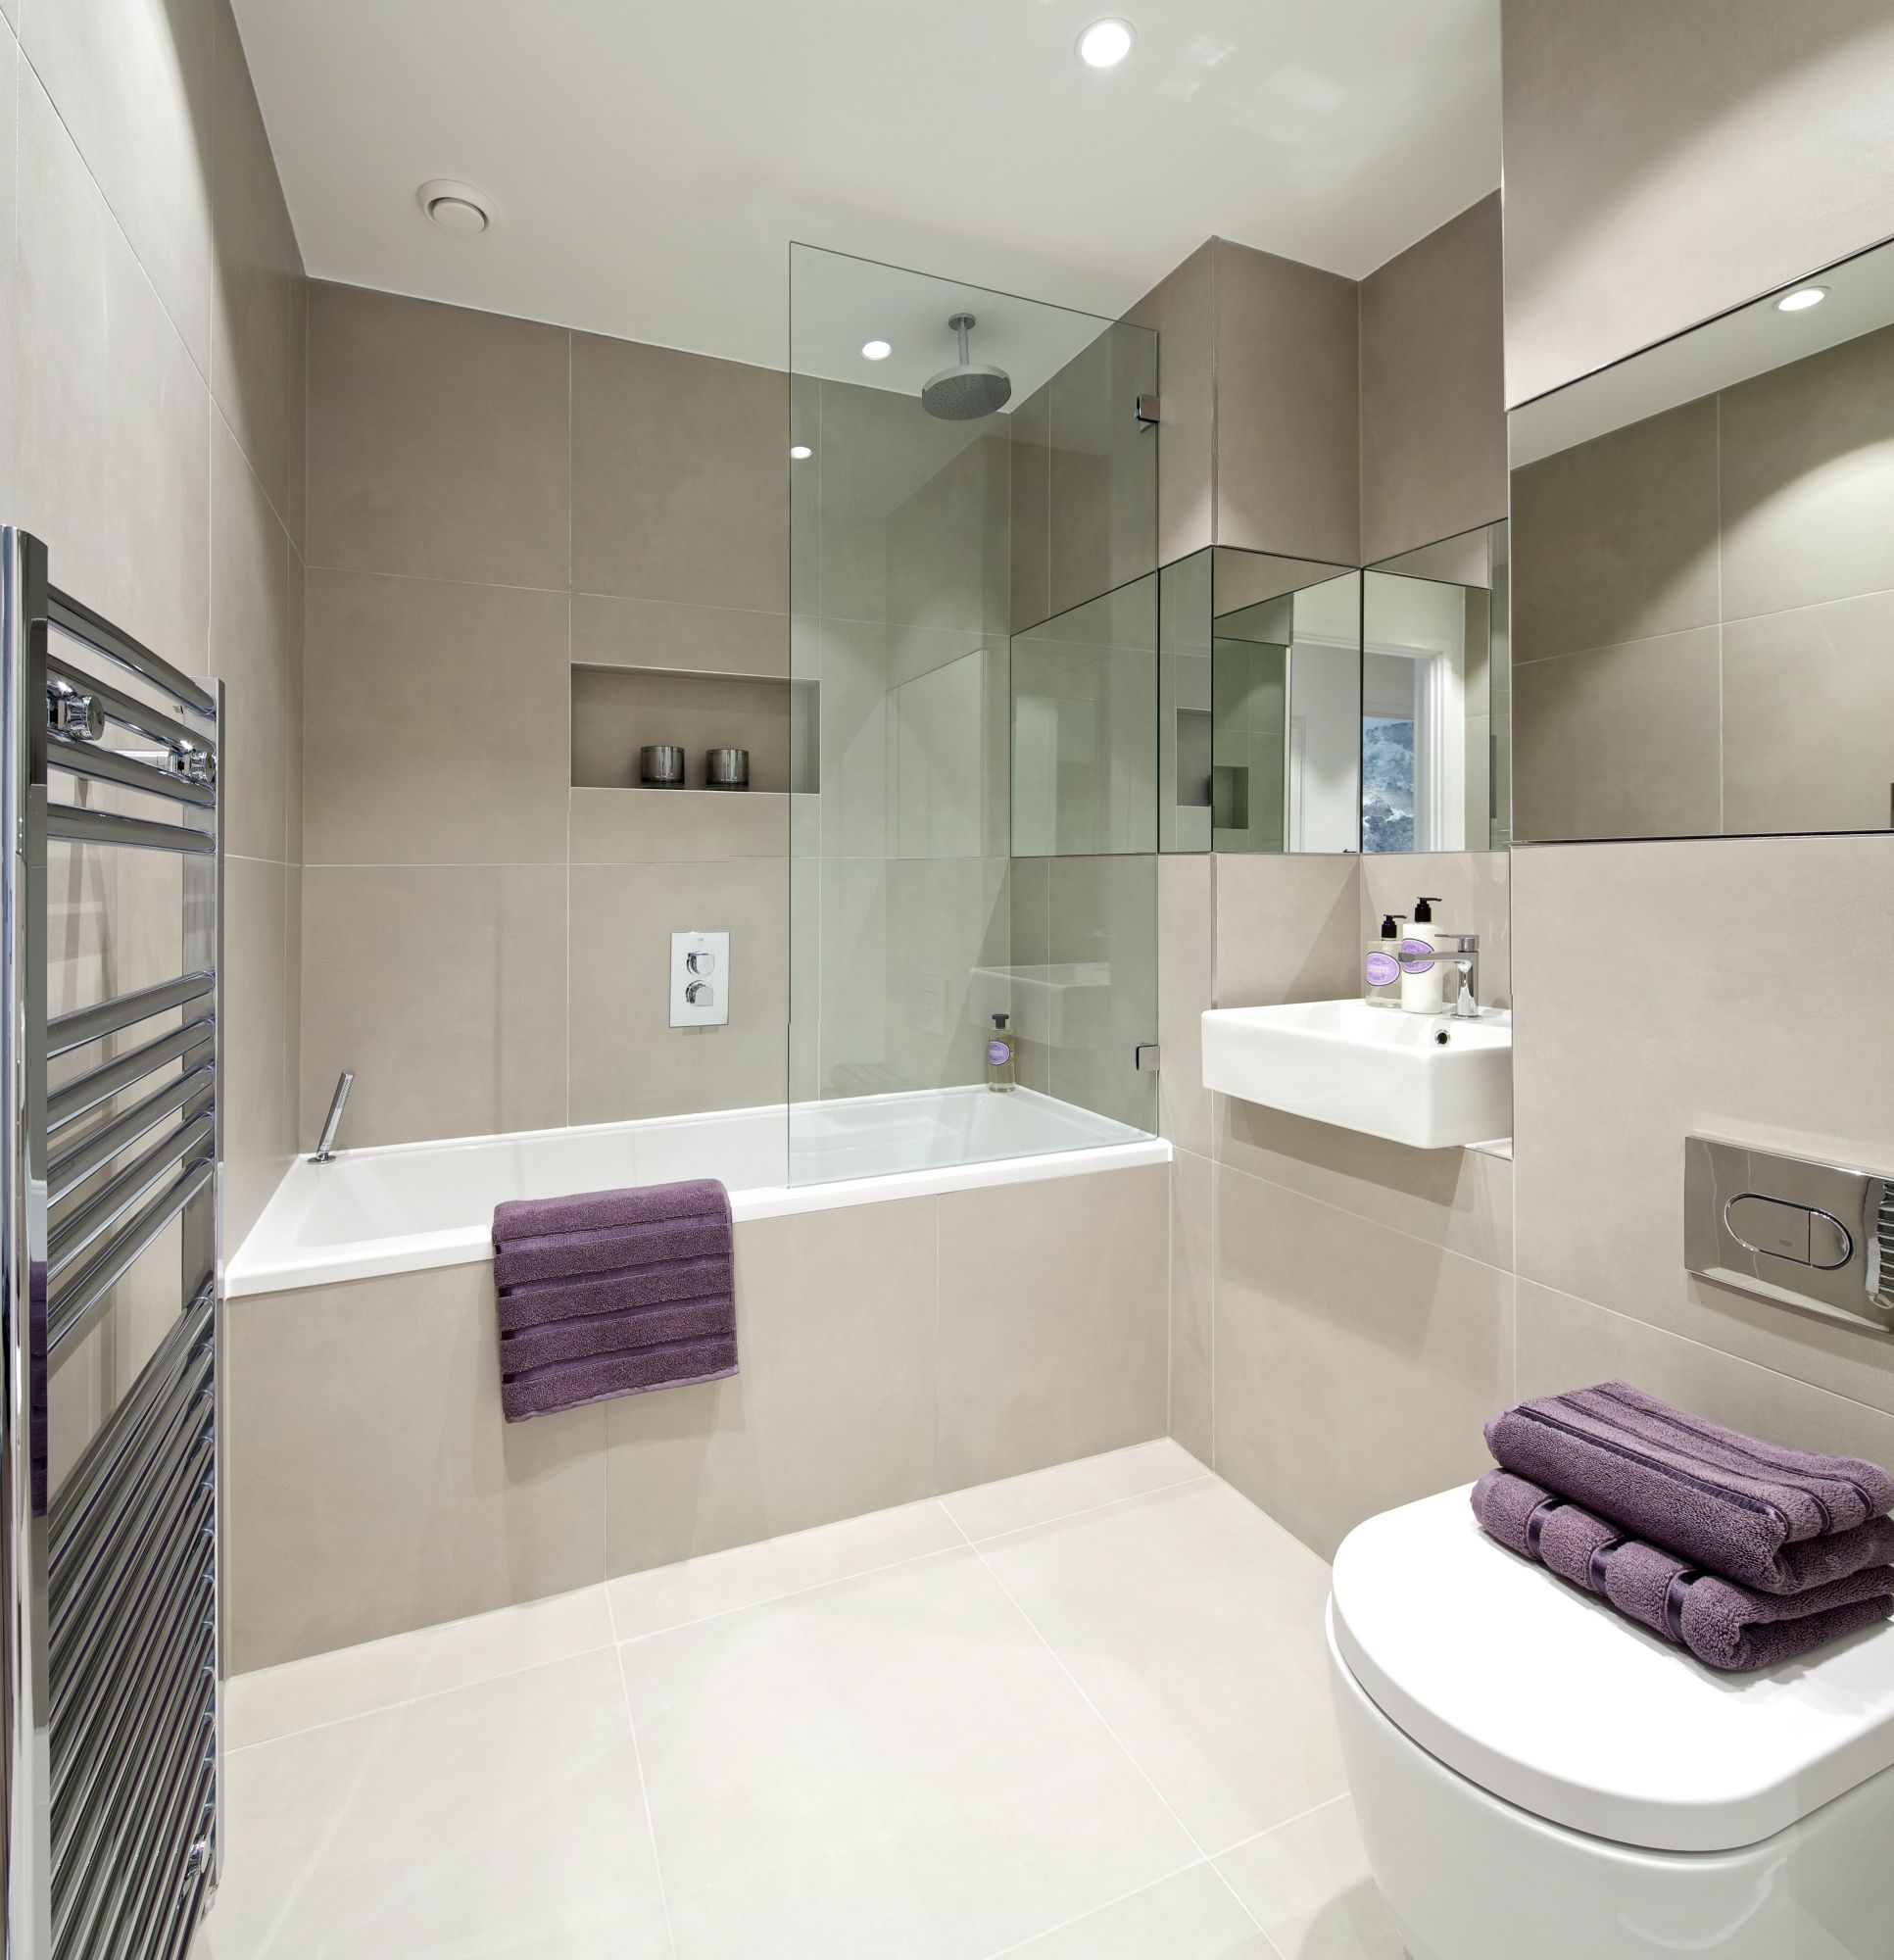 Stunning Home Interiors Bathroom Another Stunning Show Home Design By Suna Interior